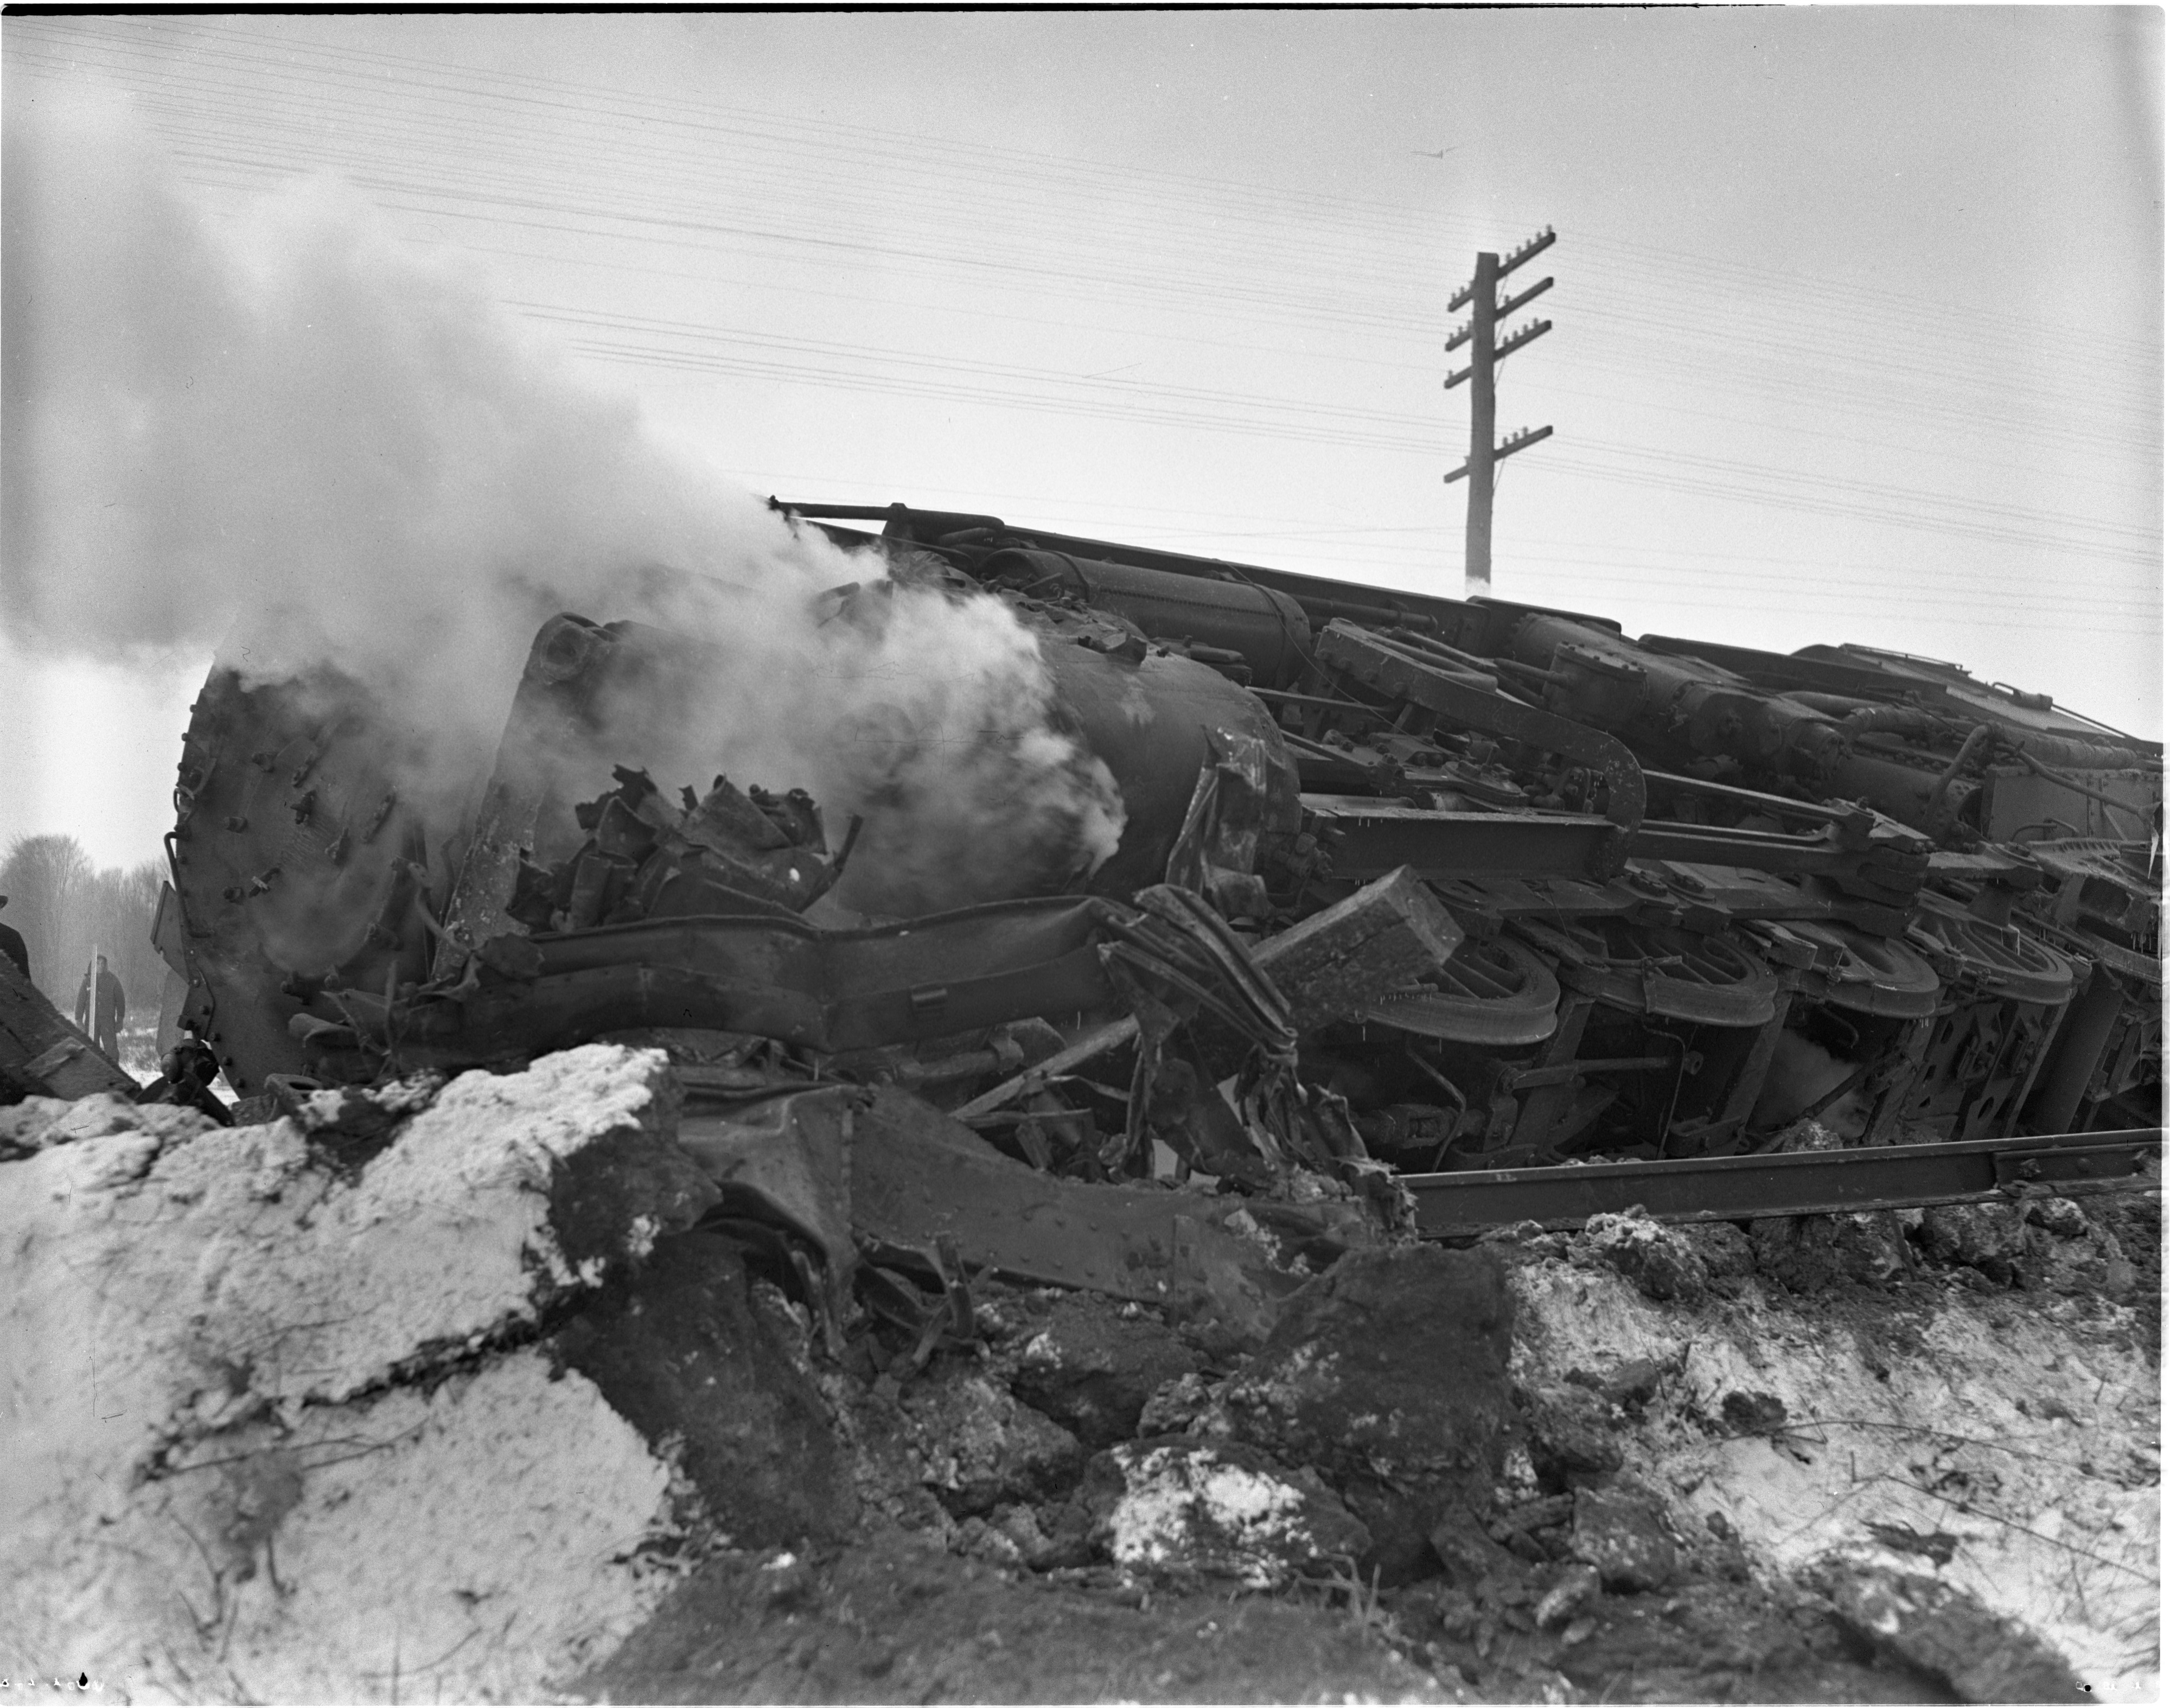 Wreckage After Trains Collide Near Ravenna Arsenal In Ohio, March 1941 image